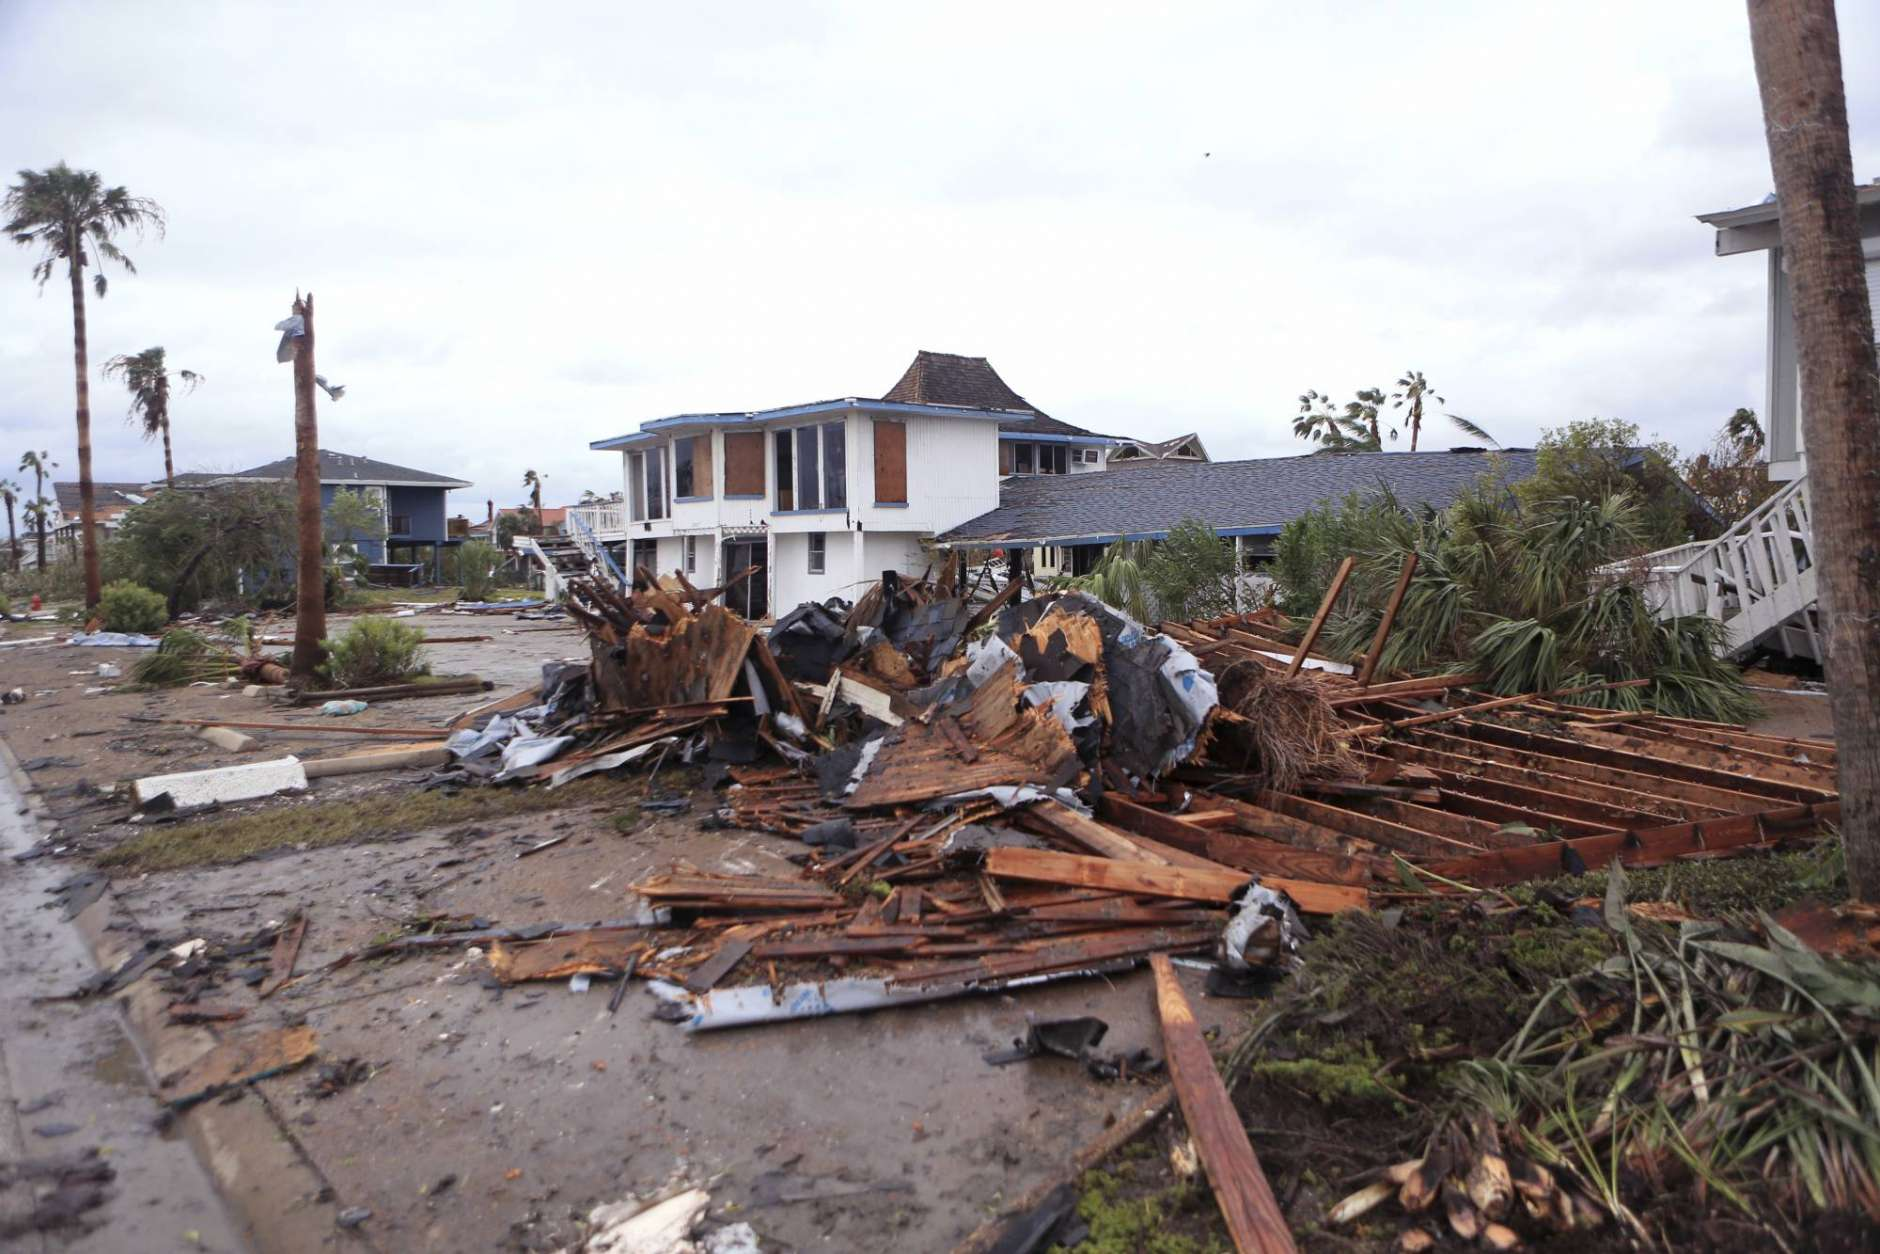 Debris lies on the ground near homes in the Key Allegro subdivision of Rockport, Texas in the wake of Hurricane Harvey on Monday, Aug. 28, 2017. (Rachel Denny Clow/Corpus Christi Caller-Times via AP)